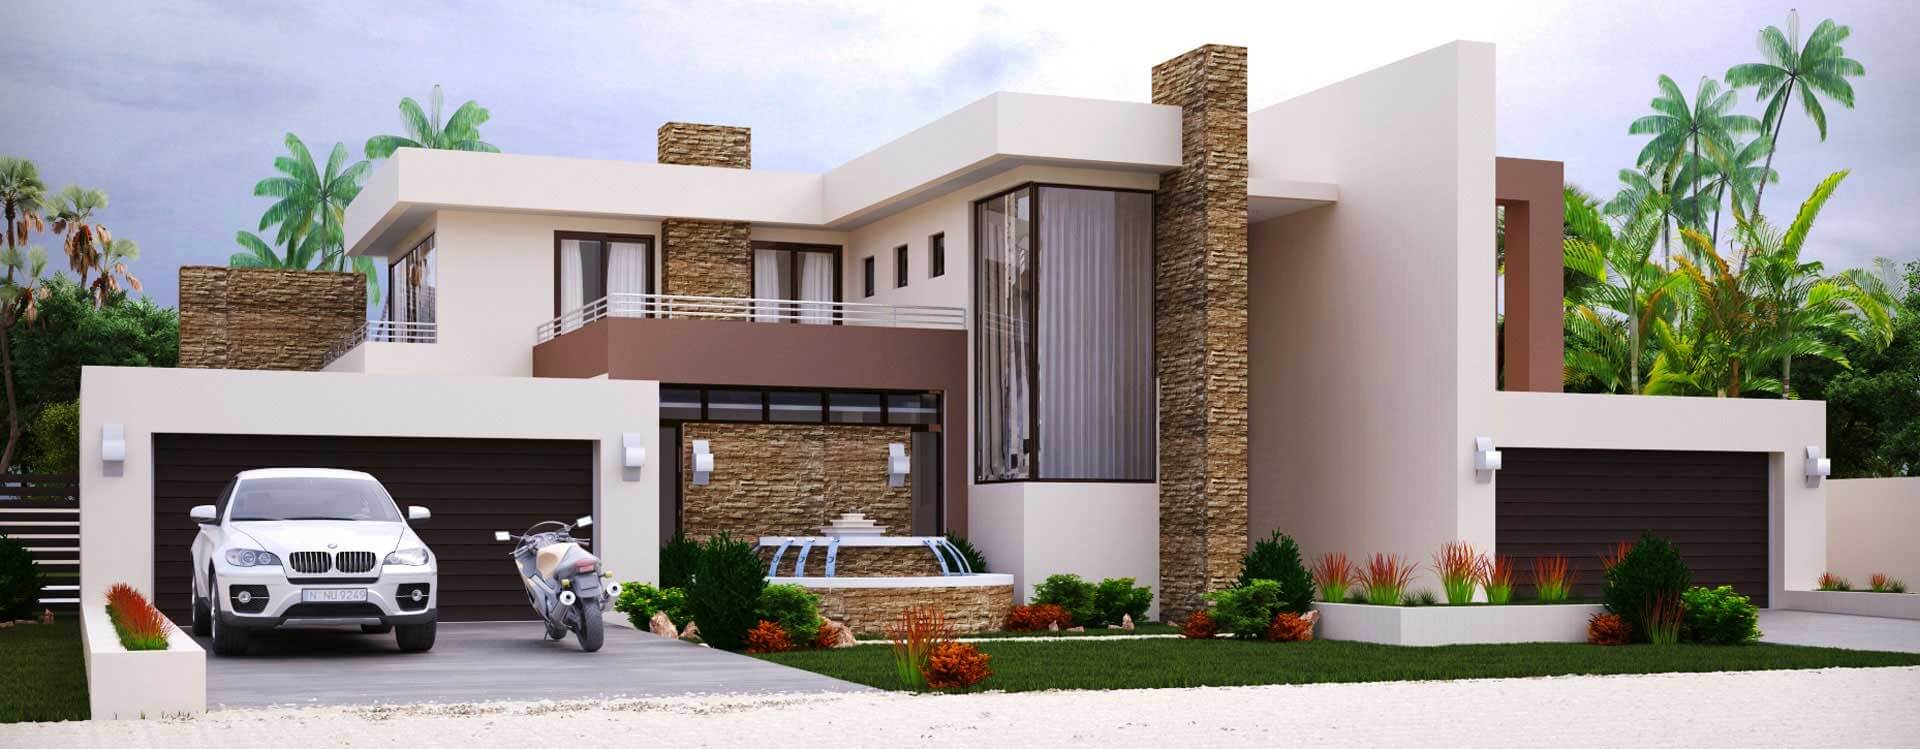 House Plans For Sale OnlineModern House Designs And Plans